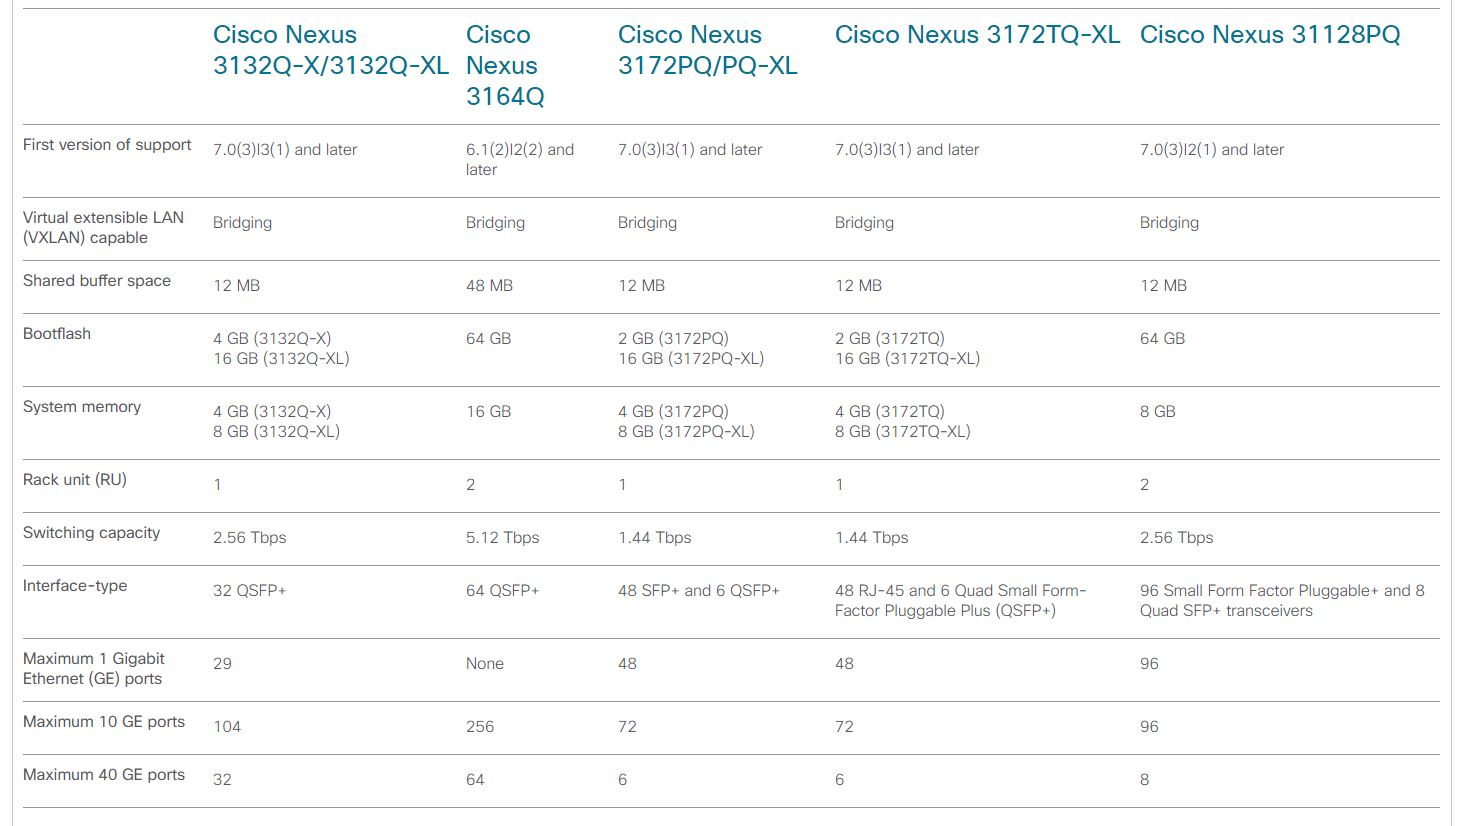 Cisco Nexus 3100 compare models